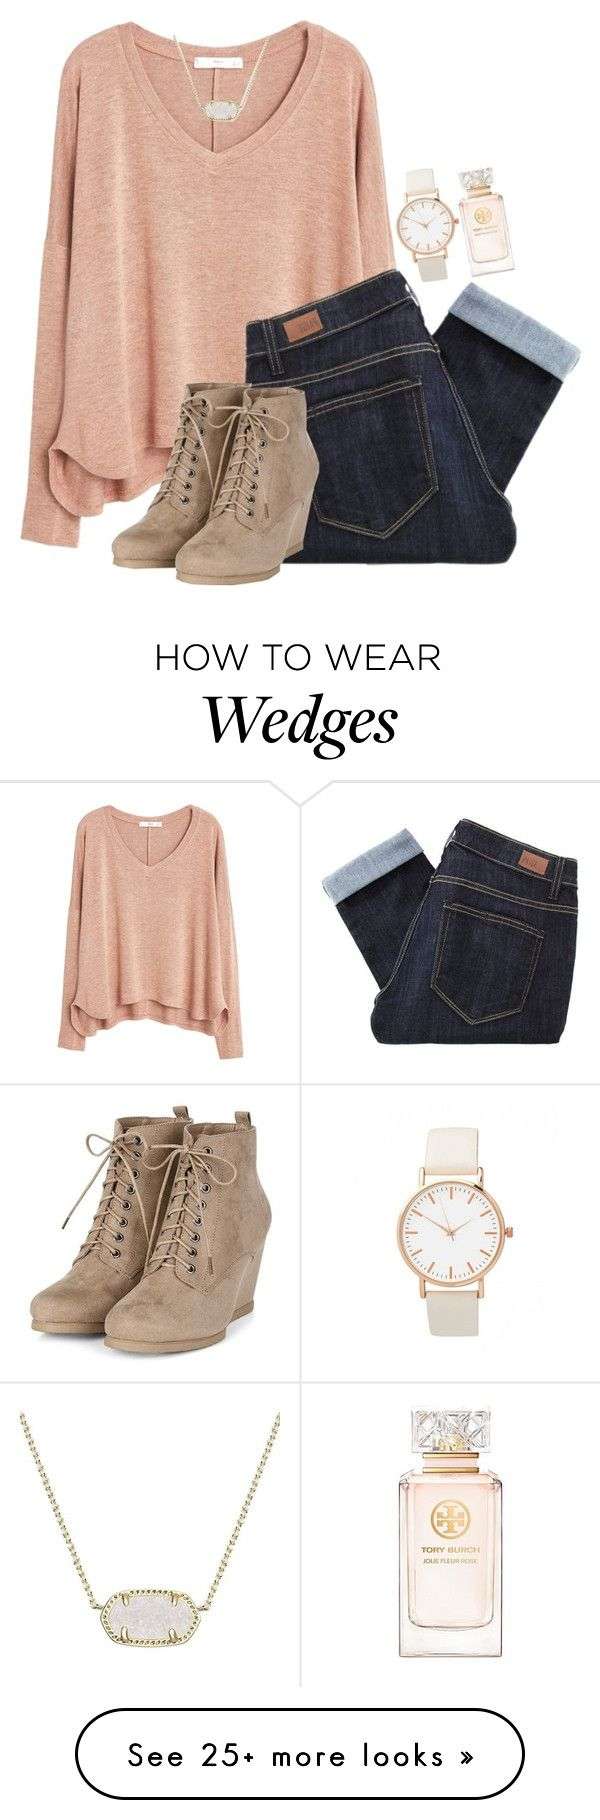 "http://www.popularclothingstyles.com/category/kendra-scott/ ""Tag!"" by ashley-watson19 on Polyvore featuring MANGO, Paige Denim, Kendra Scott, Tory Burch, women's clothing, women, female, woman, misses and juniors"